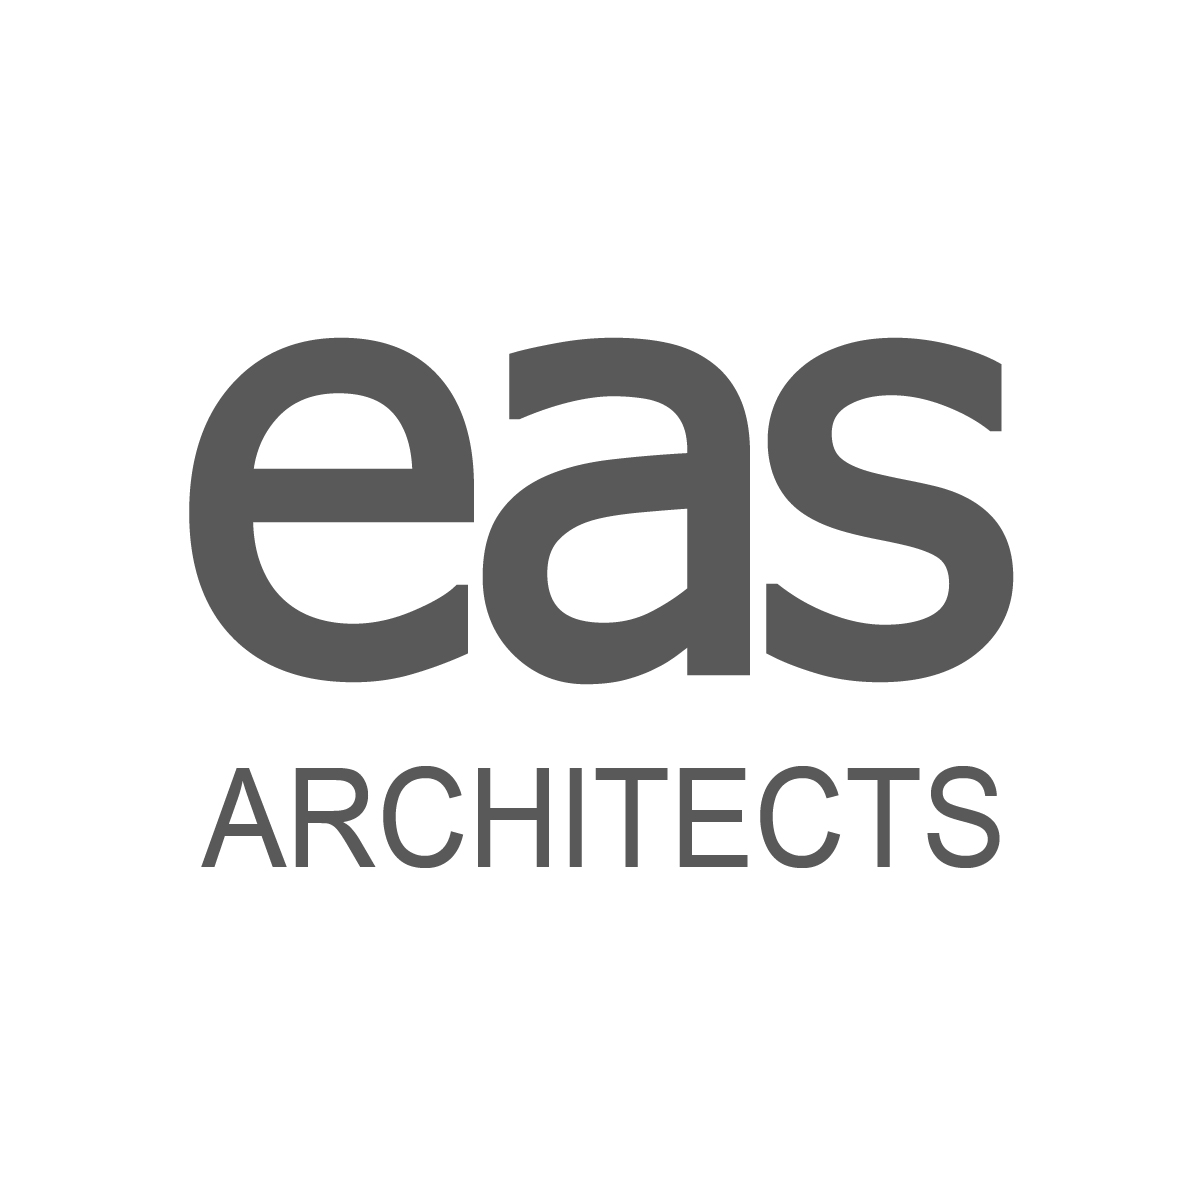 Easterwood Architetcts Studio